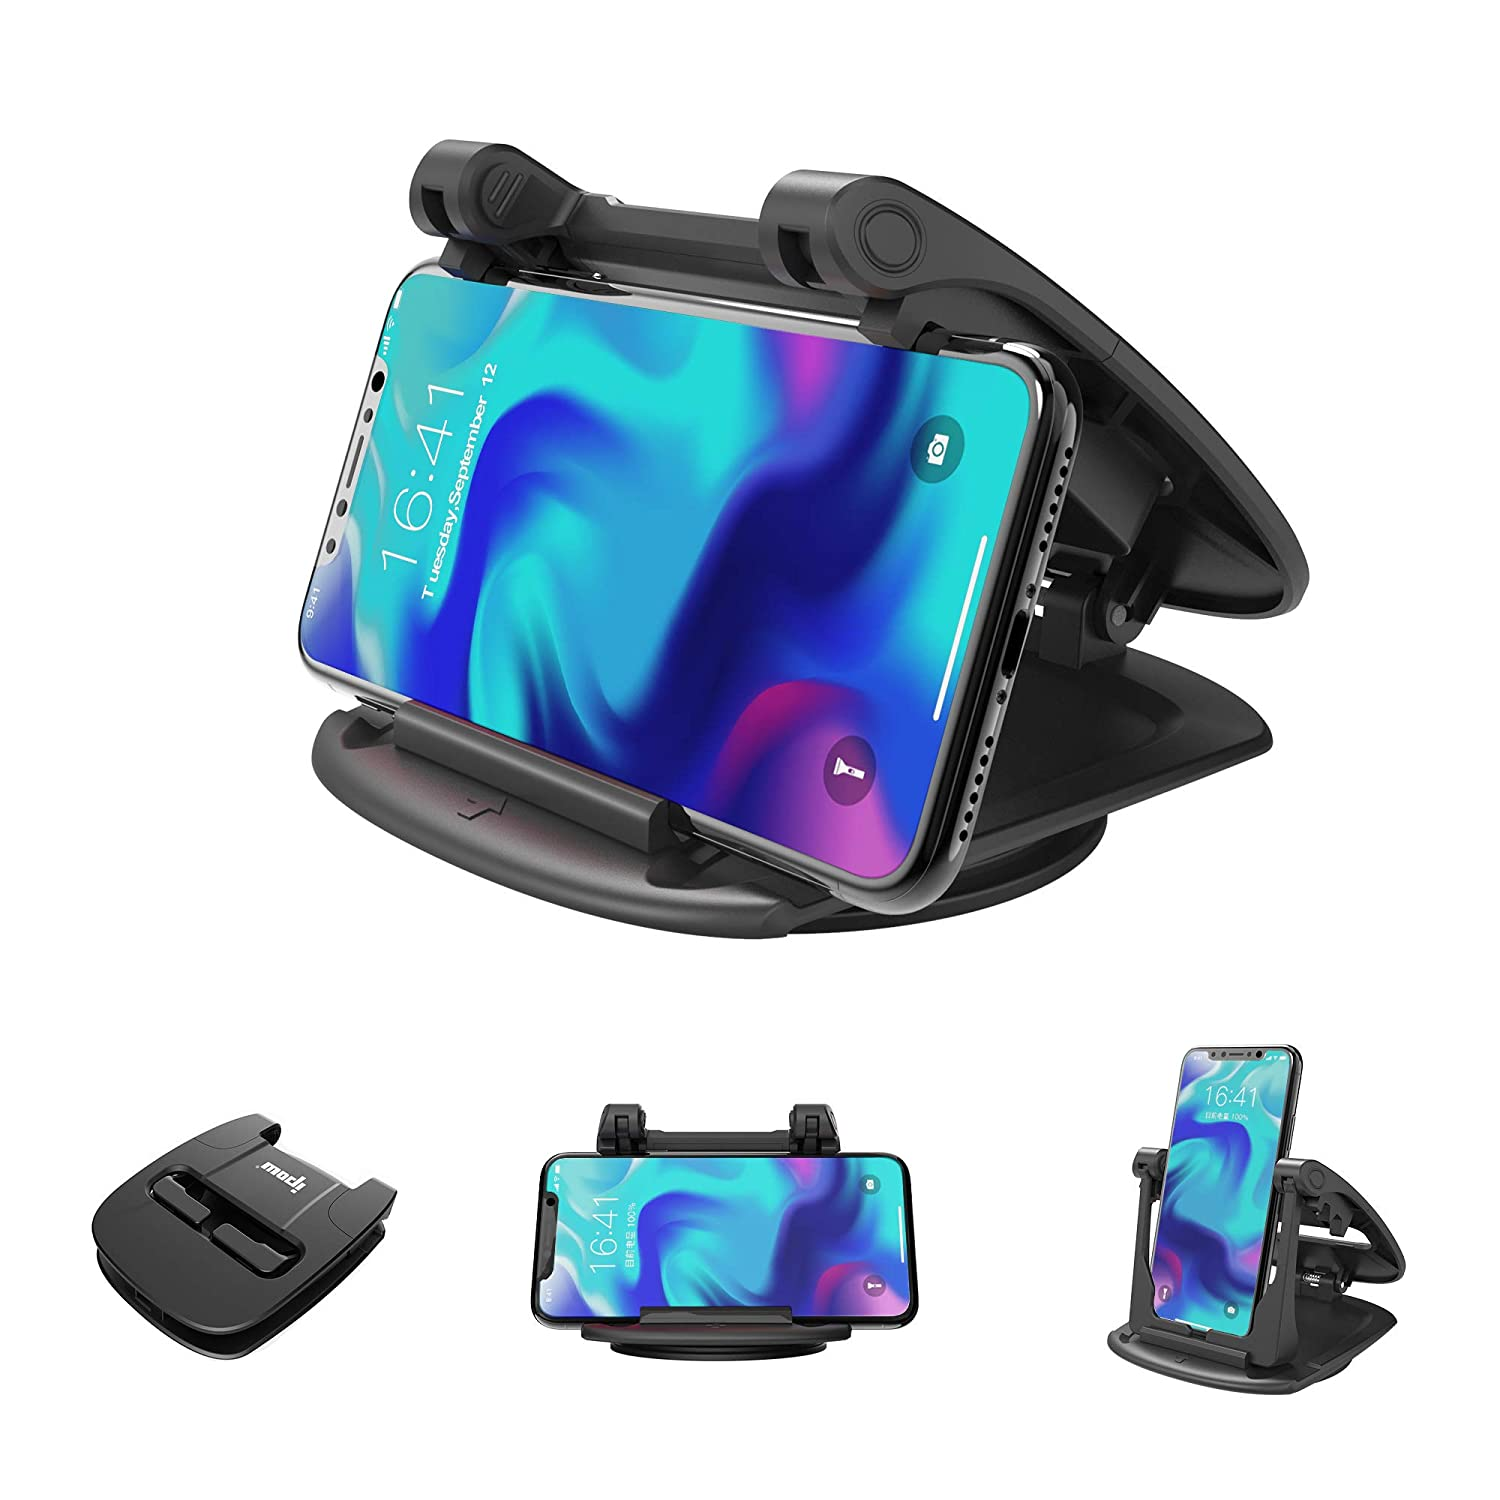 IPOW 360 Degree Rotatable Car Dashboard Phone Mount Hold Phones Vertically//Horizontally,Car Cell Phone Holder Compatible with GPS,iPhone 7 6 6s X XR XS Max 8 Plus Samsung S9 S8 S7 S6 Note 8 Google IP1-201710160